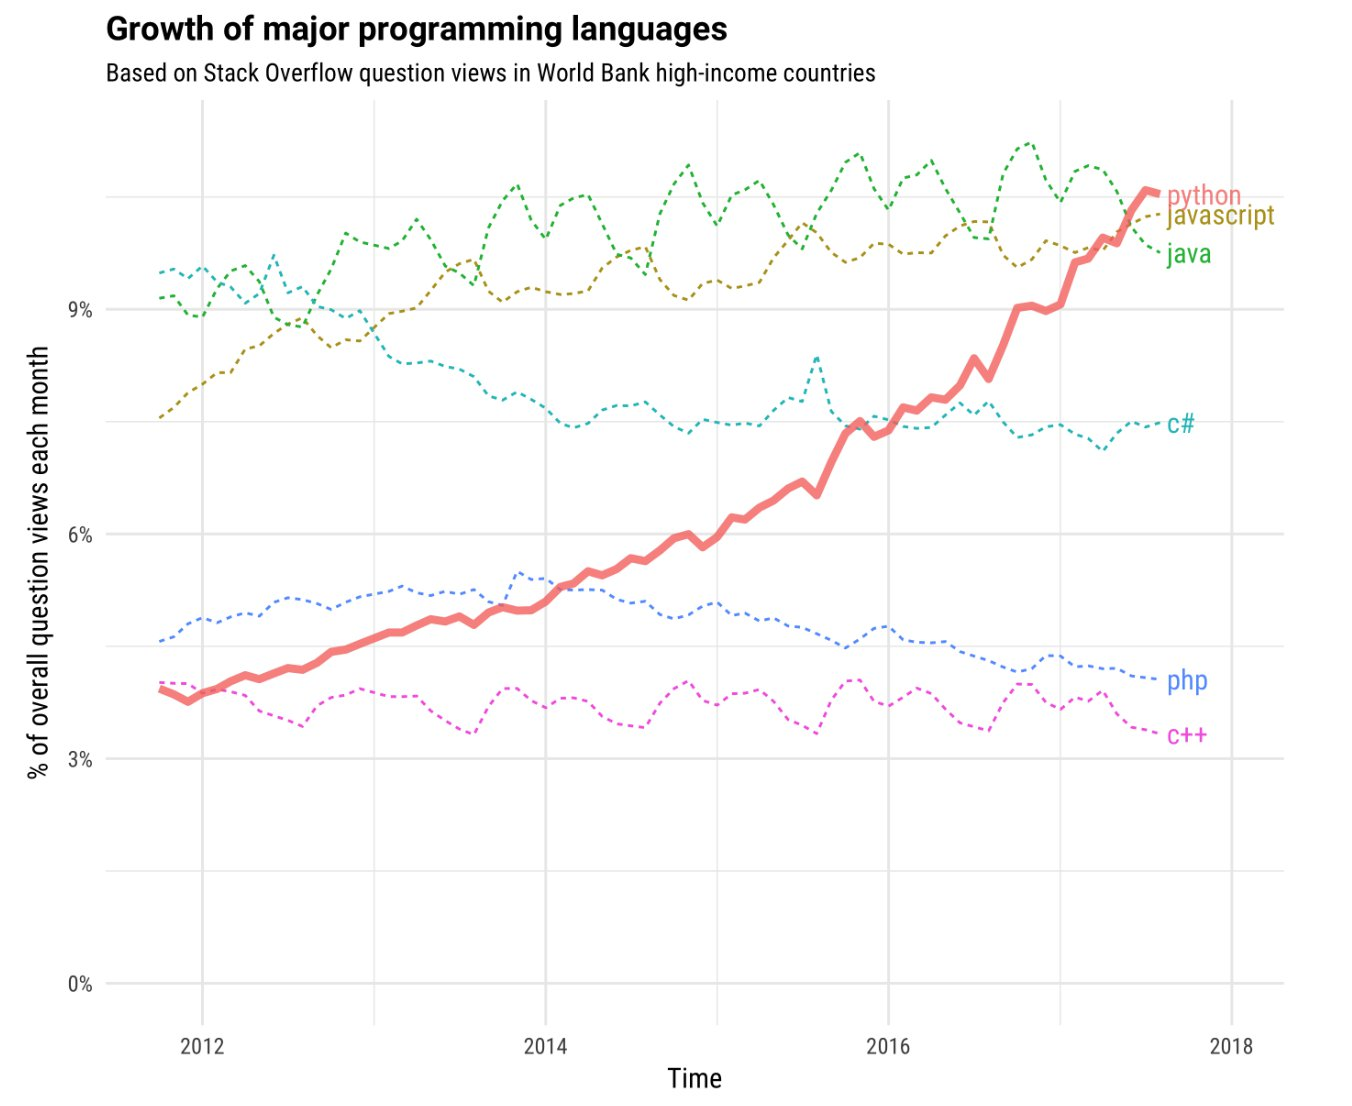 stack_overflow_-_growth_of_major_programming_languages.png__1352x1106_q85_crop_subsampling-2_upscale